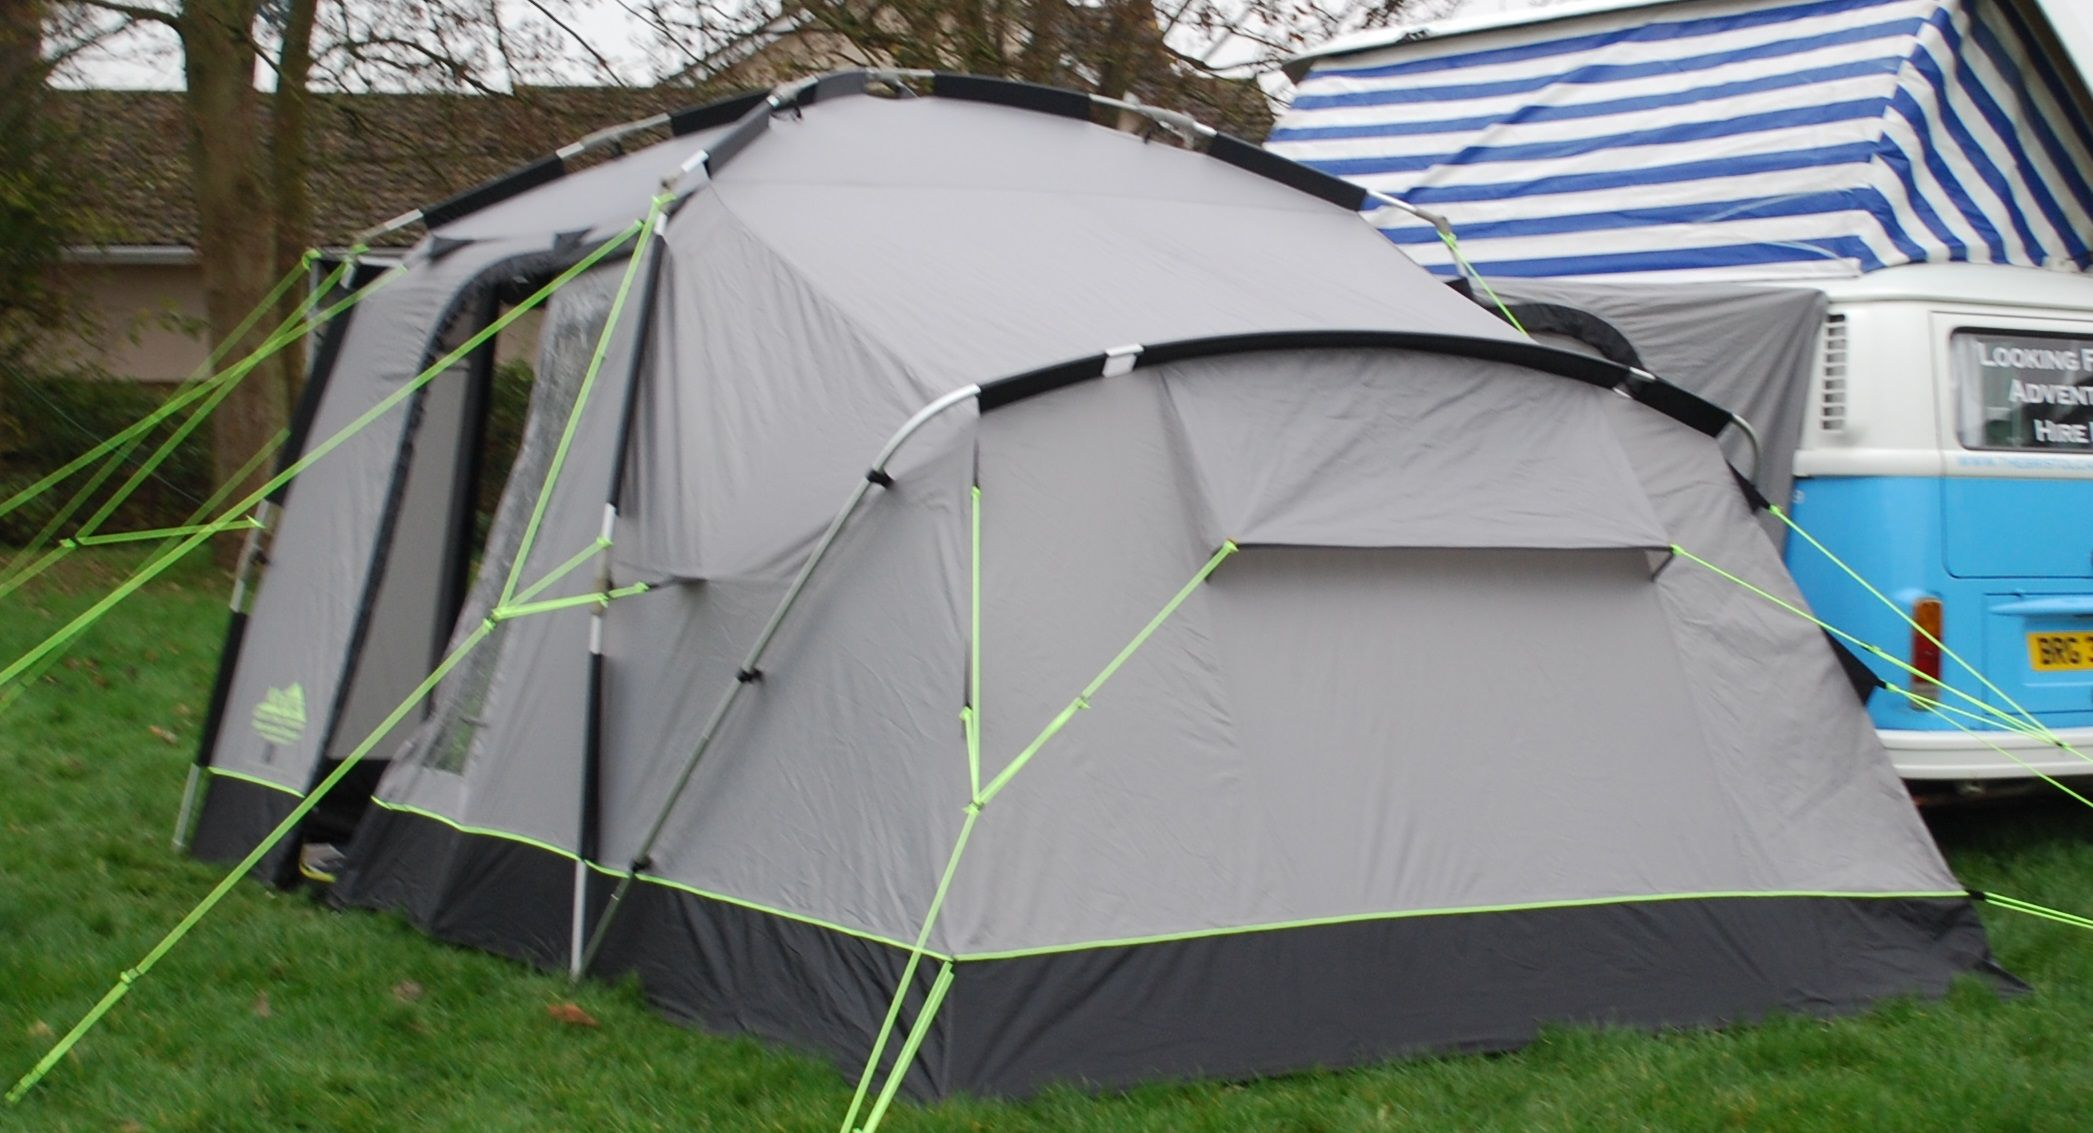 Khyam Motordome Sleeper Quick Erect Driveaway Awning